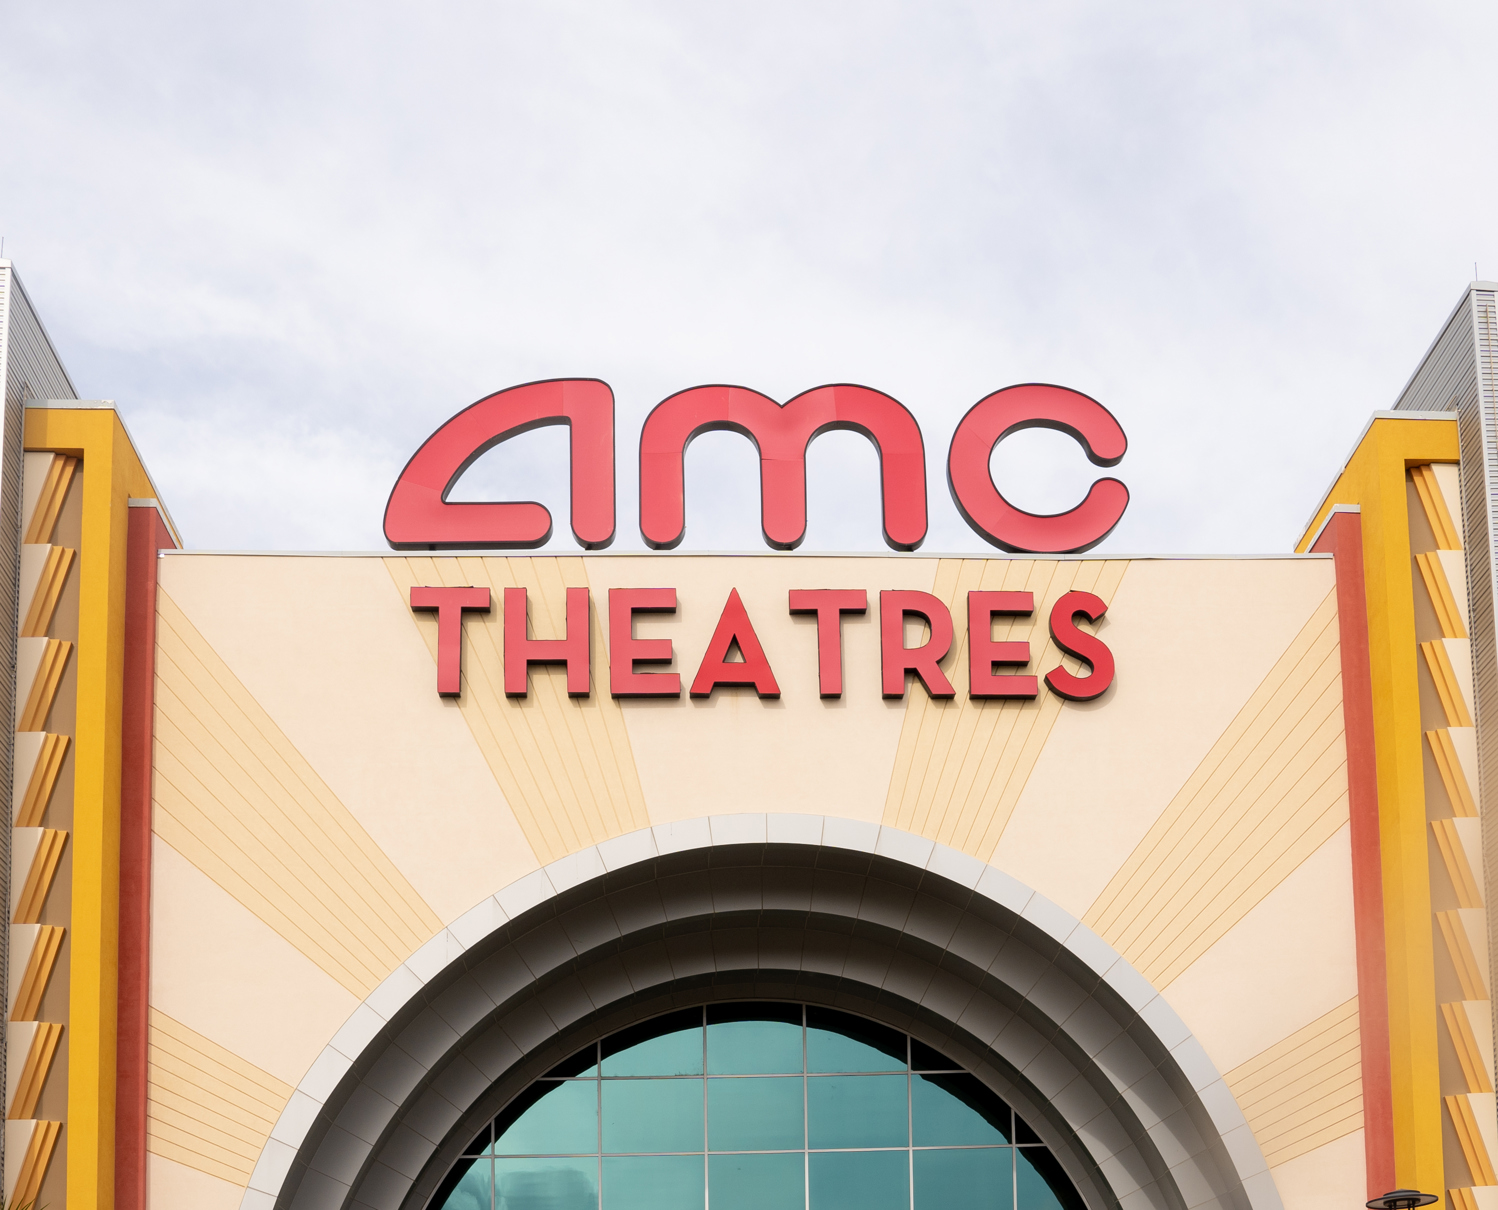 AMC Entertainment AMC stock news and analysis